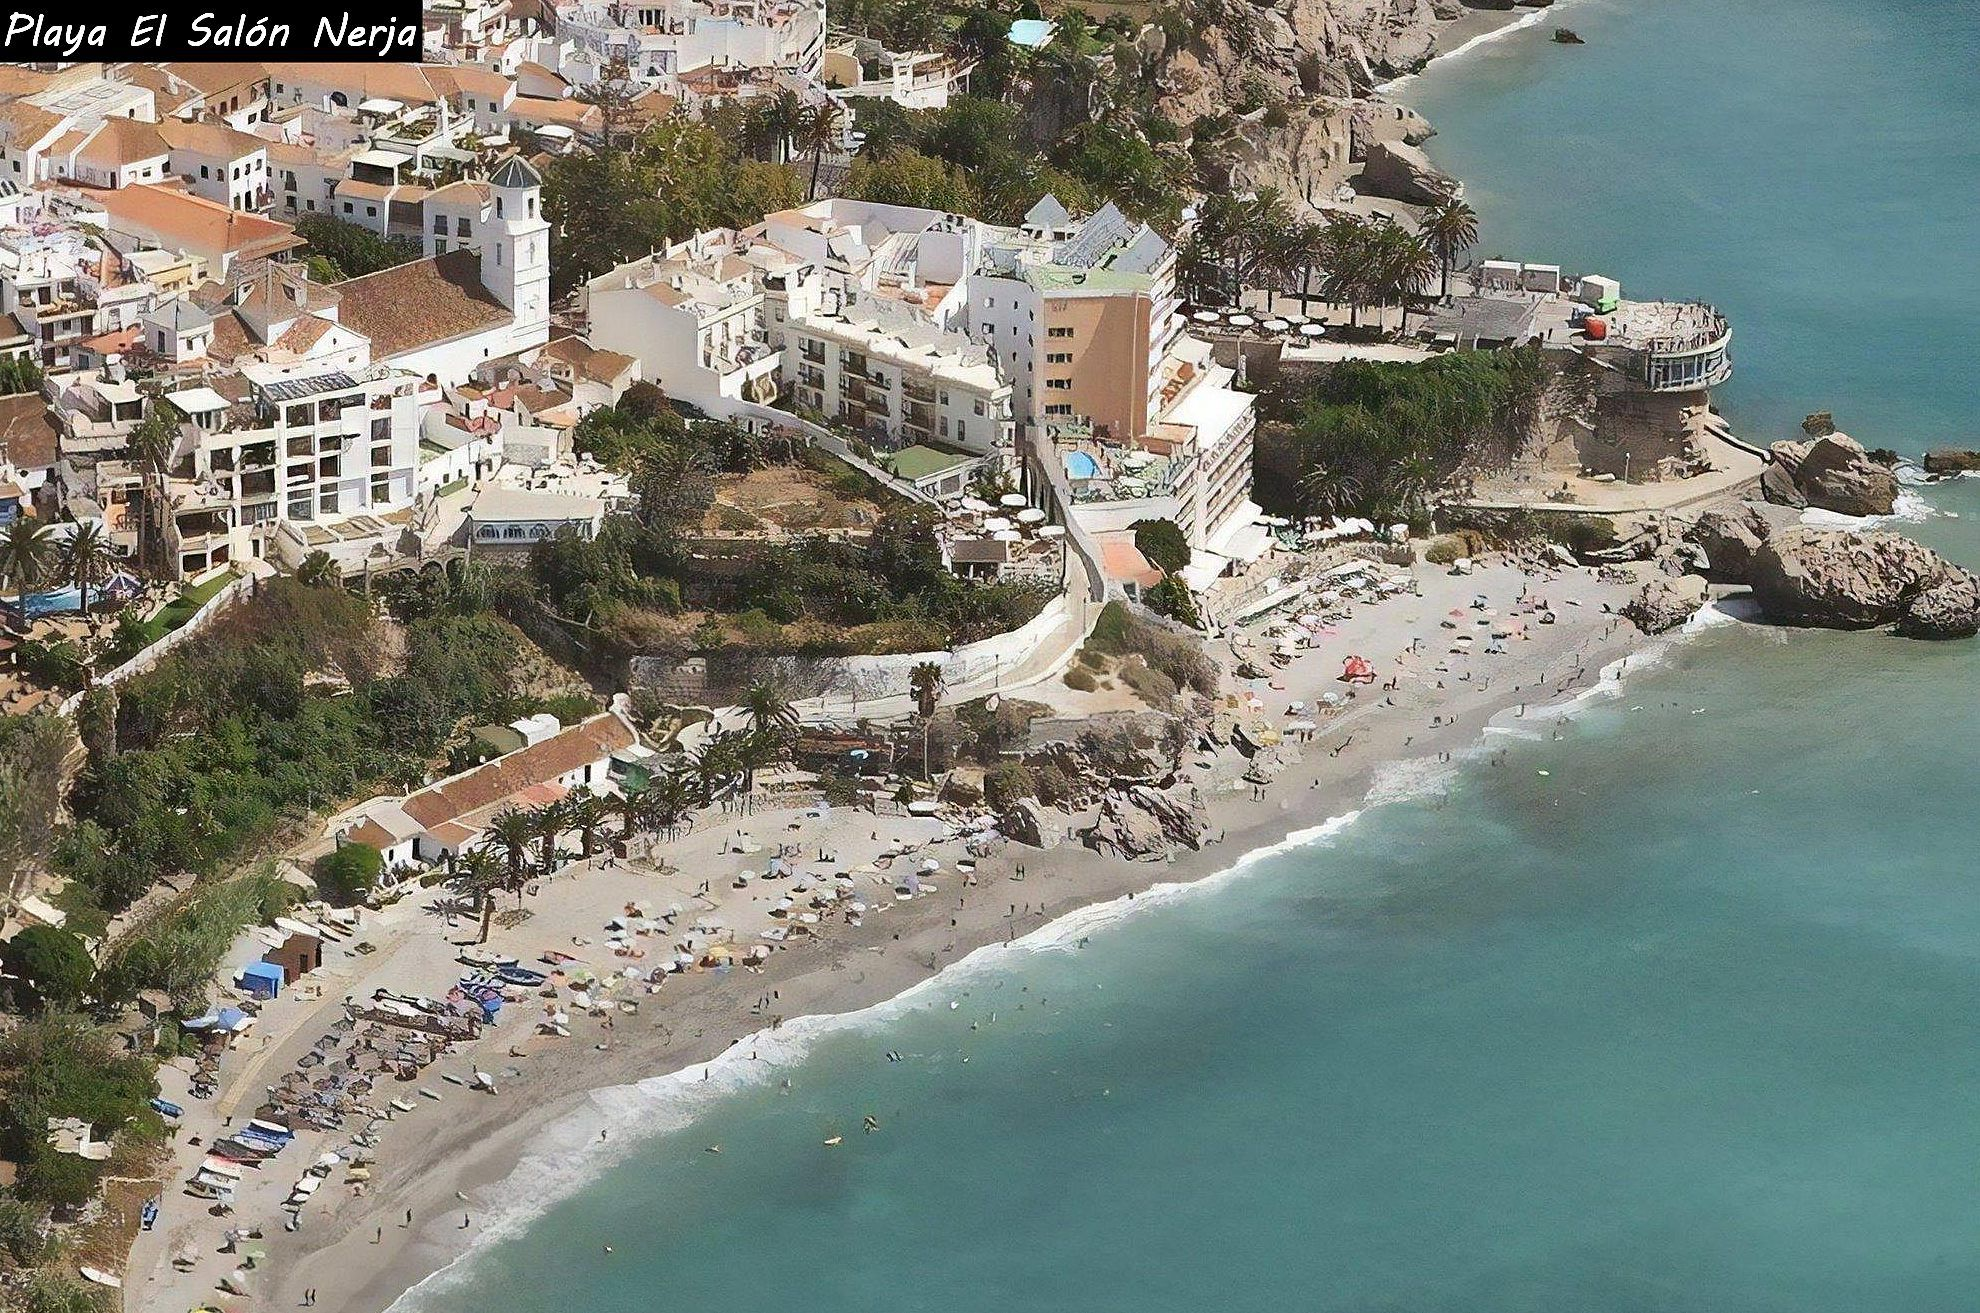 playa el salon nerja foto